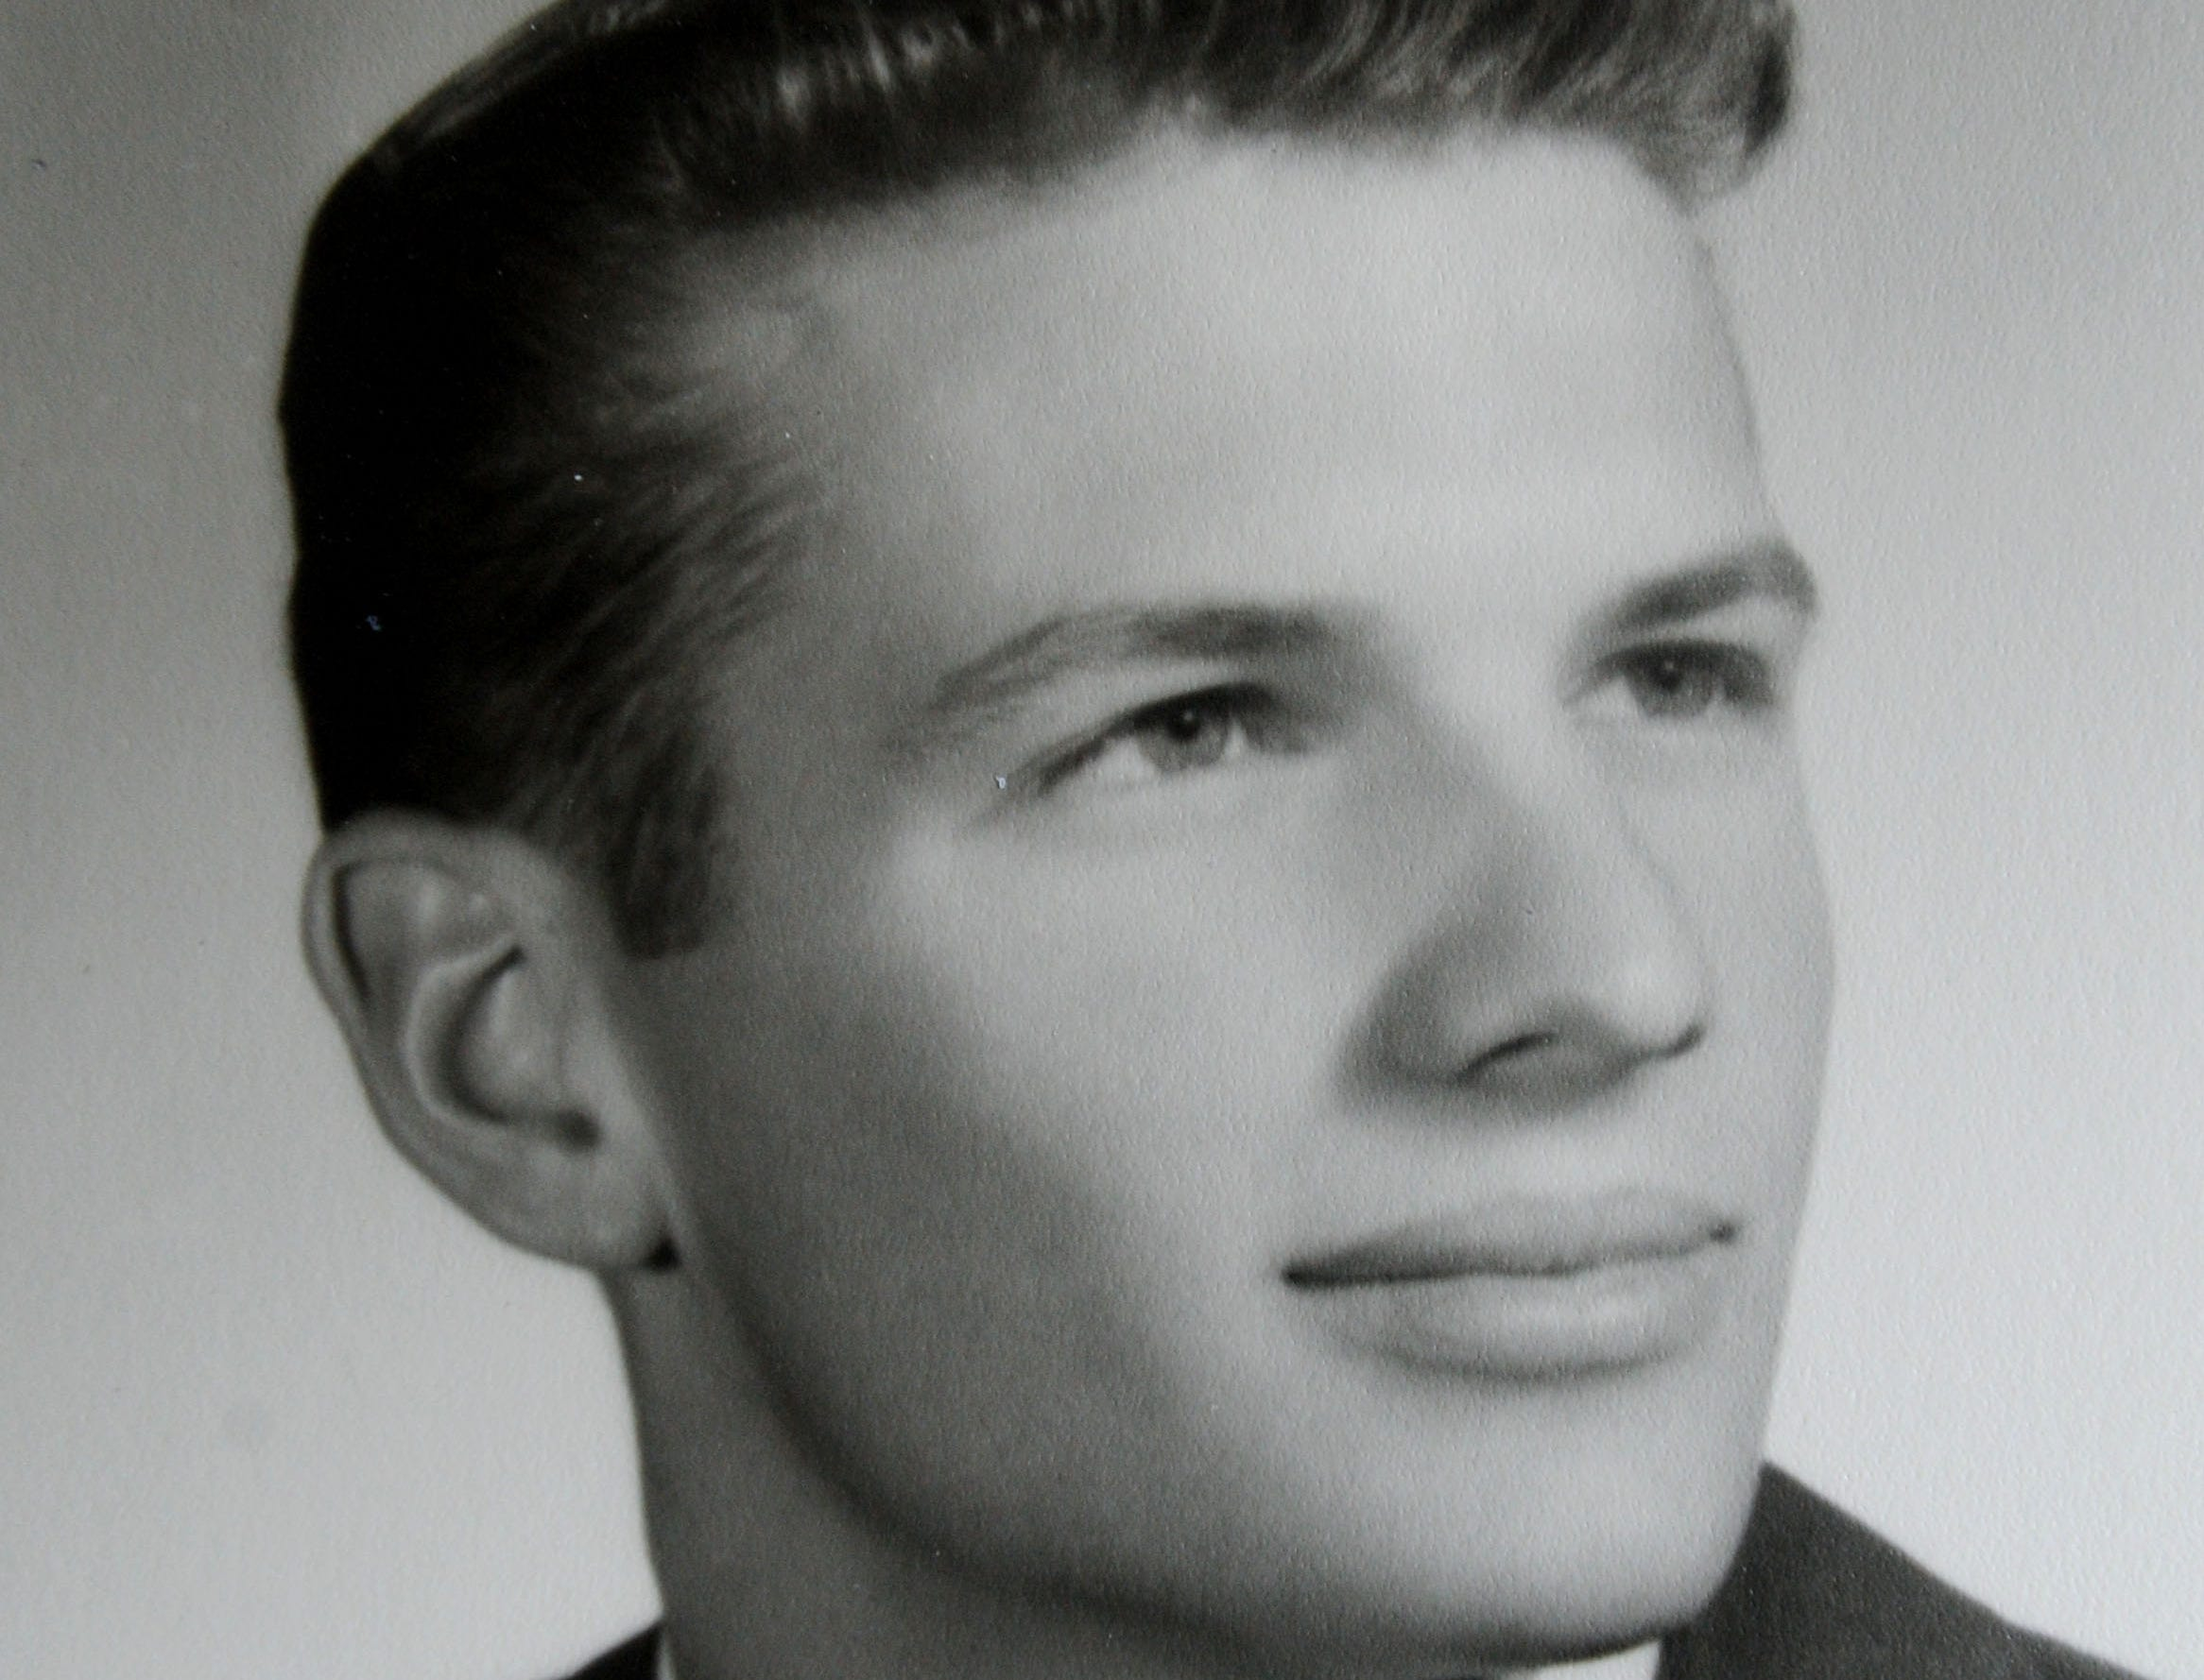 Larry J. Stevens' mother, Gladys Fleckenstein, of Camarillo, has searched for his remains since his death on Valentine's Day 1969. Stevens served as a fighter pilot in the U.S. Navy and was shot down over Laos.